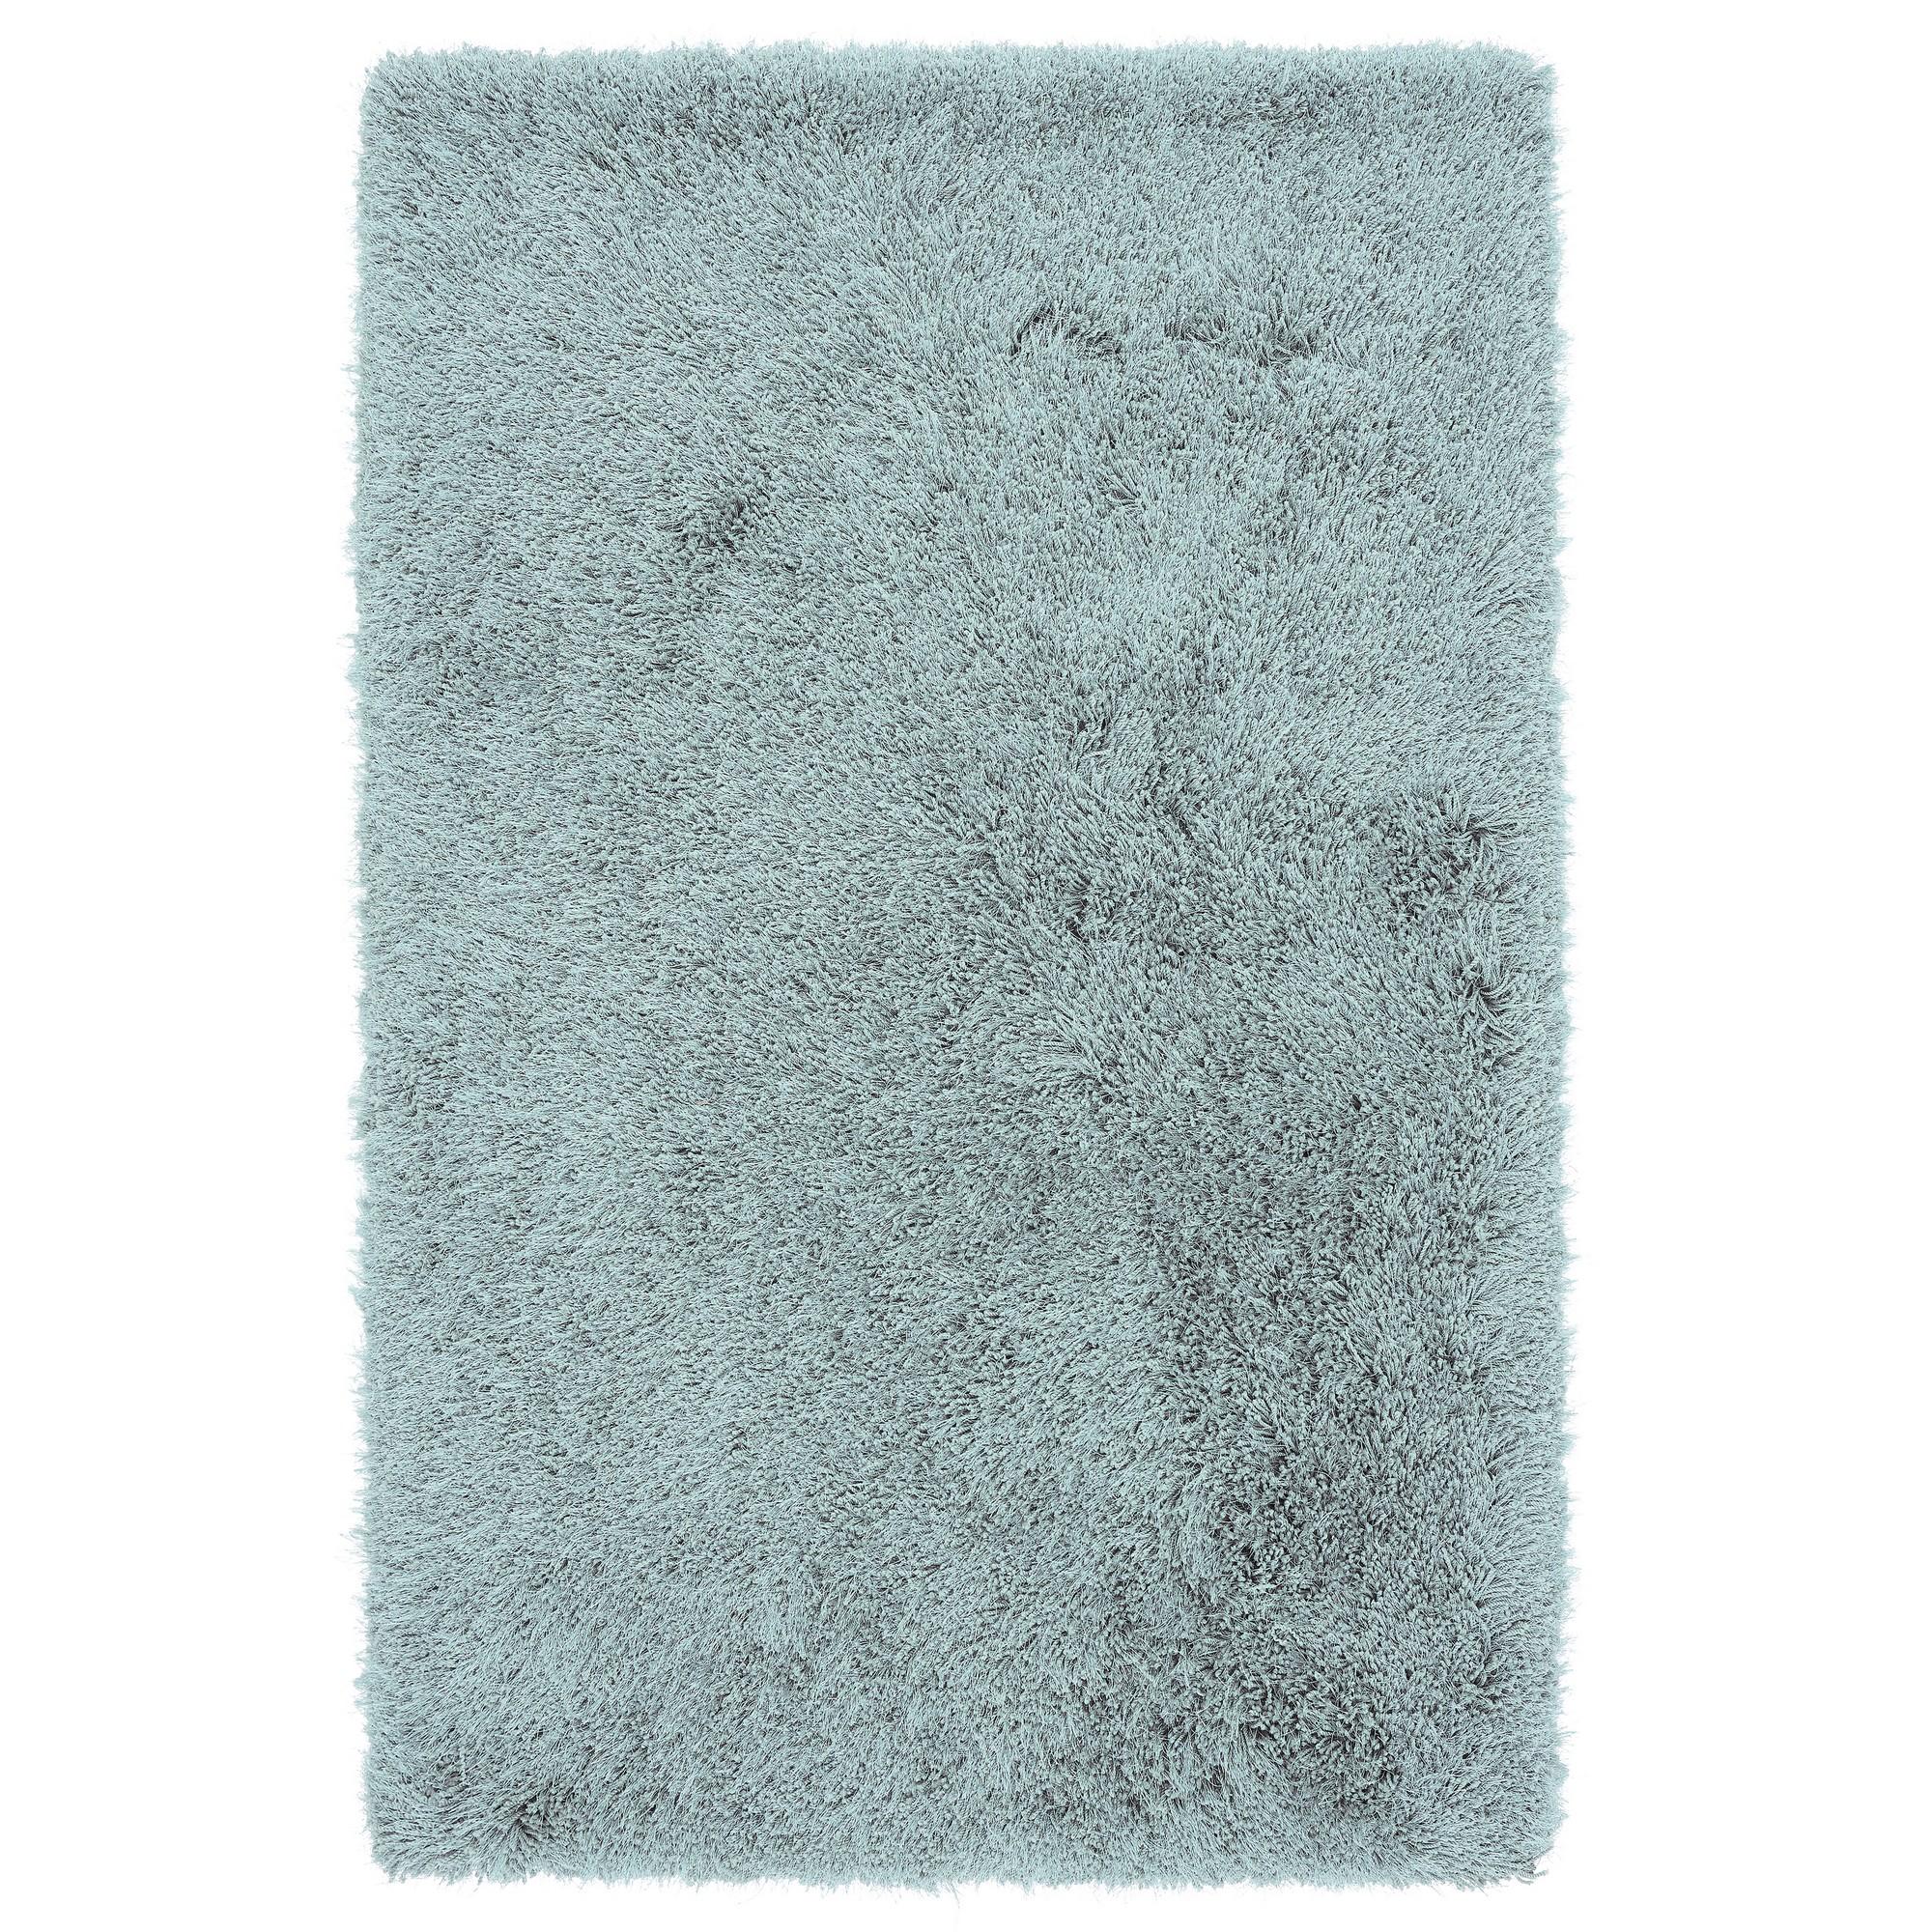 Cascade Shaggy Rugs in Duck Egg Blue